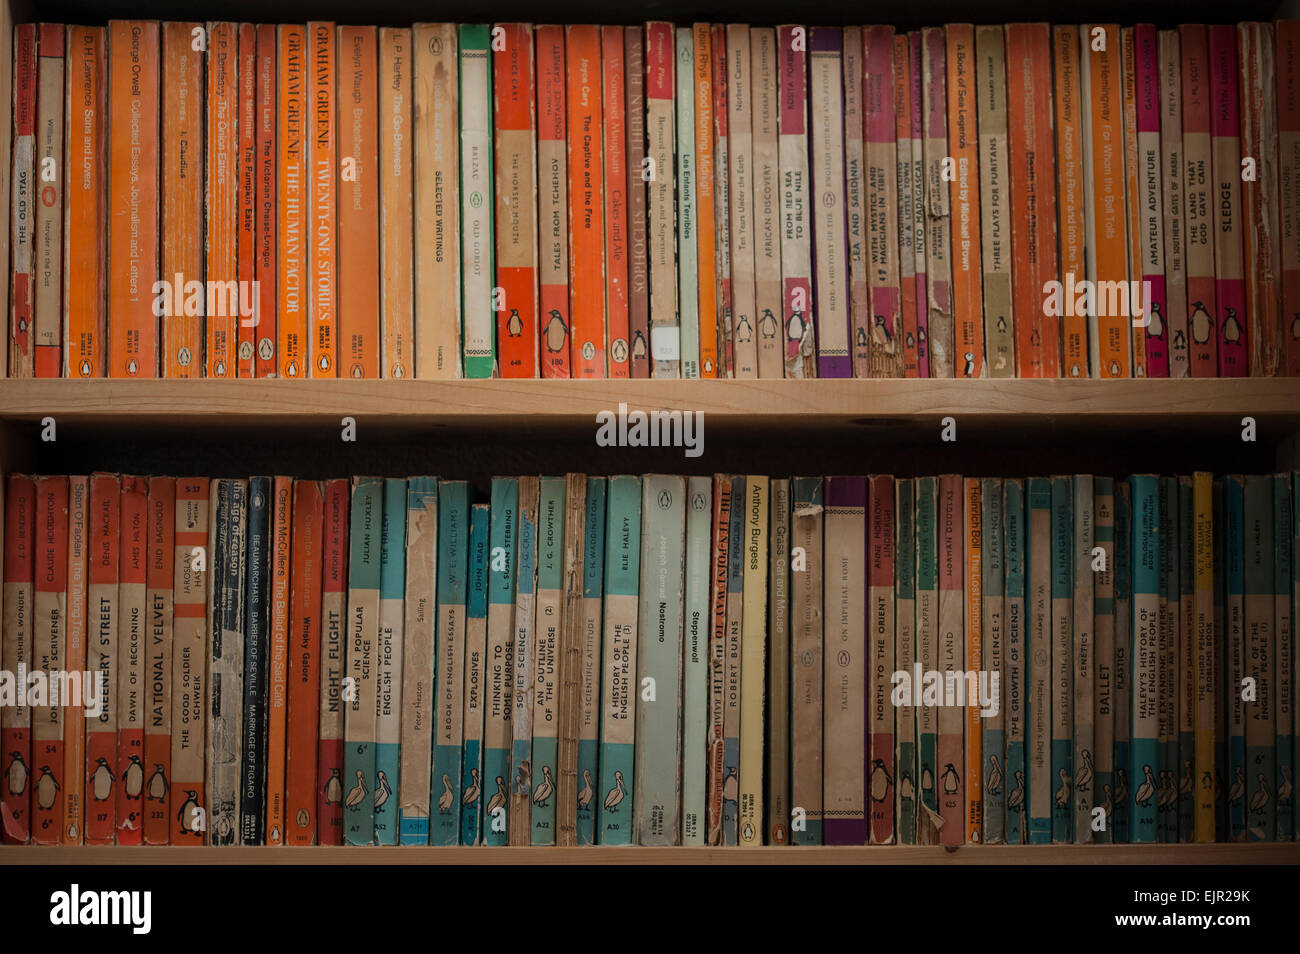 Bookcase Shelves Full Of A Collection Vintage Penguin And Pelican Books